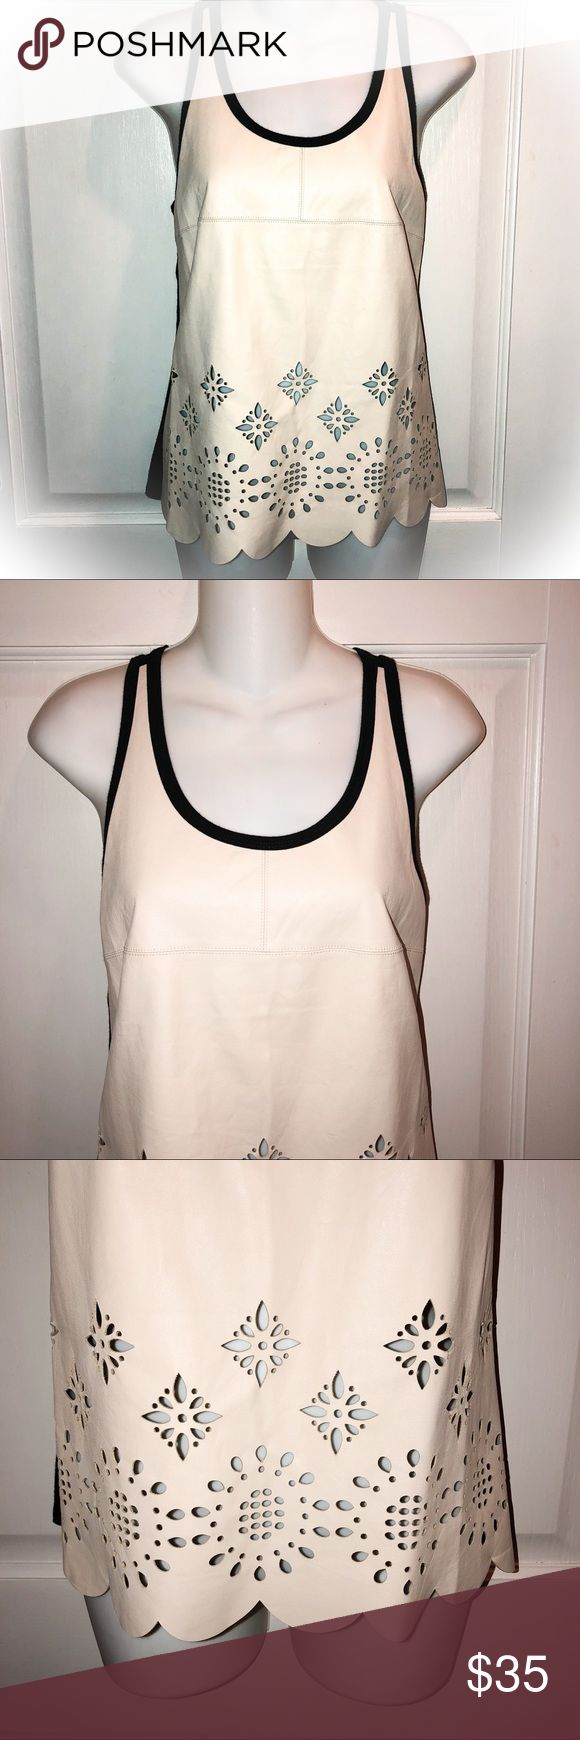 """🌸Fifteen Twenty Beige Cut Out Lamb's Leather Tank 🌸Beautiful and soft beige lamb's leather tank top; camisole. Featuring scalloped hem and black knit back. 🌸 🌸Size XS 🌸Bust 32"""" 🌸Length 22.5"""" shoulder seam to hem Fifteen Twenty Tops Tank Tops"""